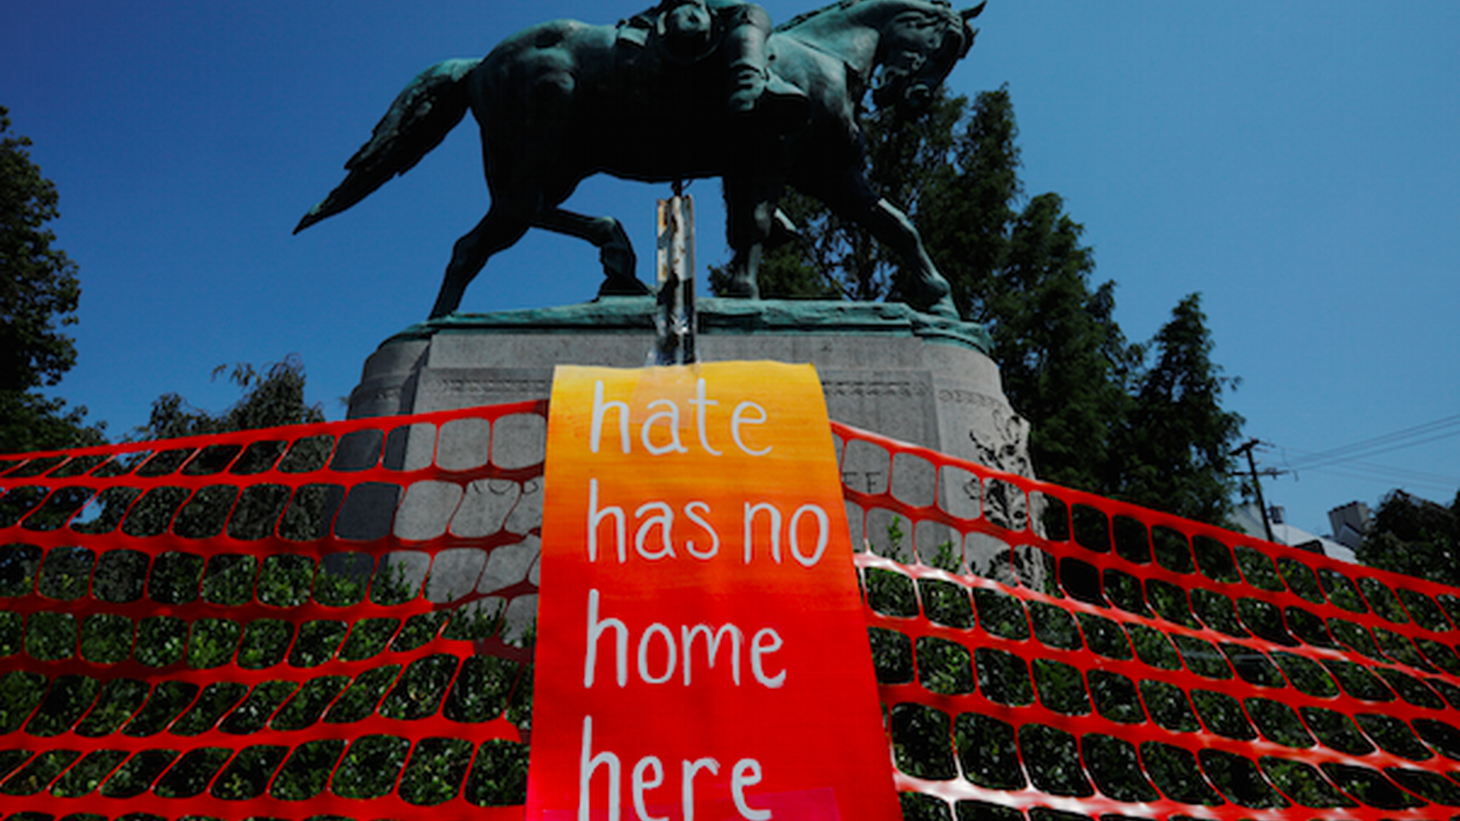 On Sunday, white nationalists plan to march on Washington -- one year after the rally in Charlottesville.